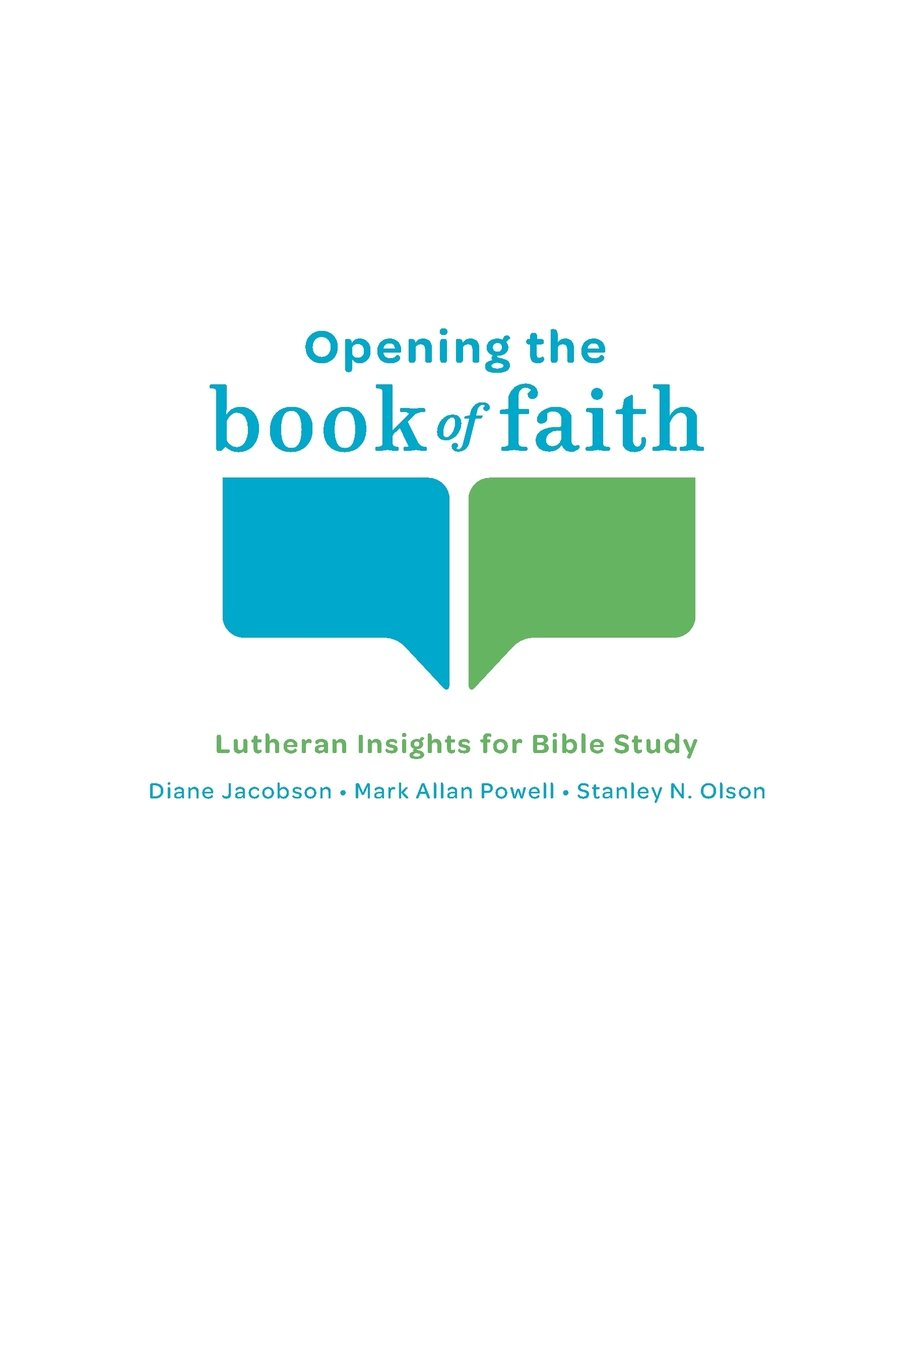 Opening the Book of Faith: Lutheran Insights for Bible Study